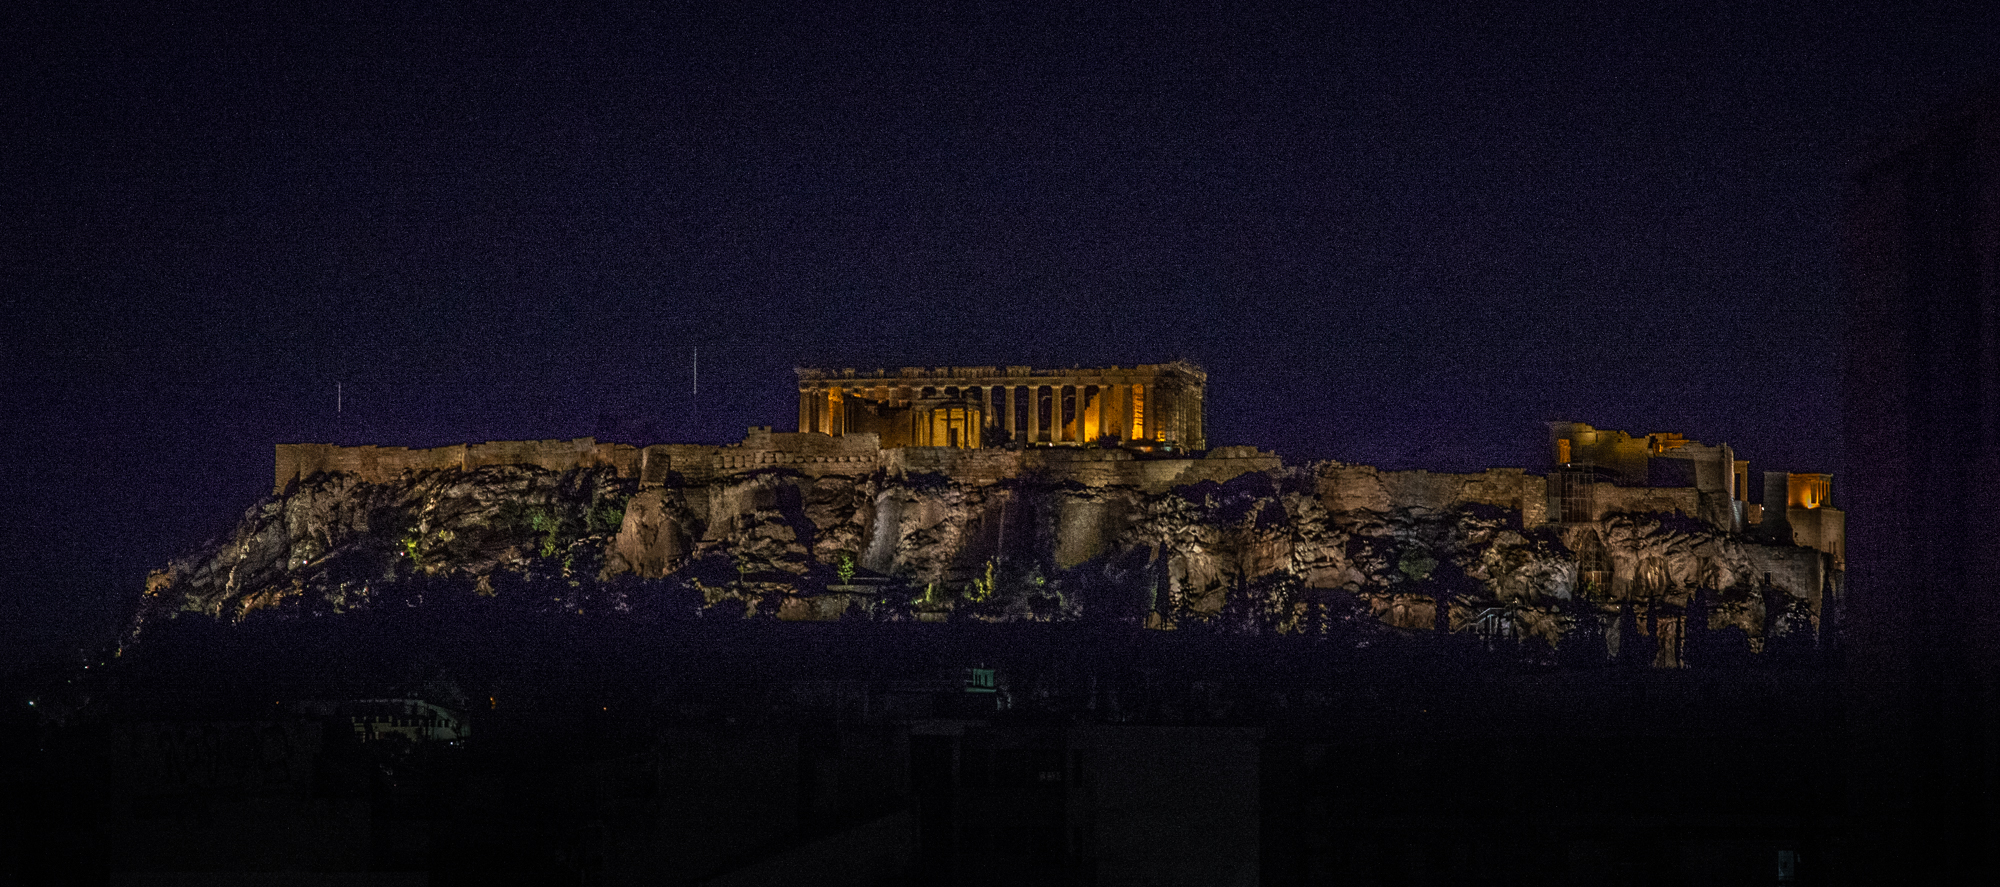 This was our view of the Acropolis from our terrace, albeit taken with my zoom lens. Nevertheless, it was an amazing sight. We just could not tire of it.